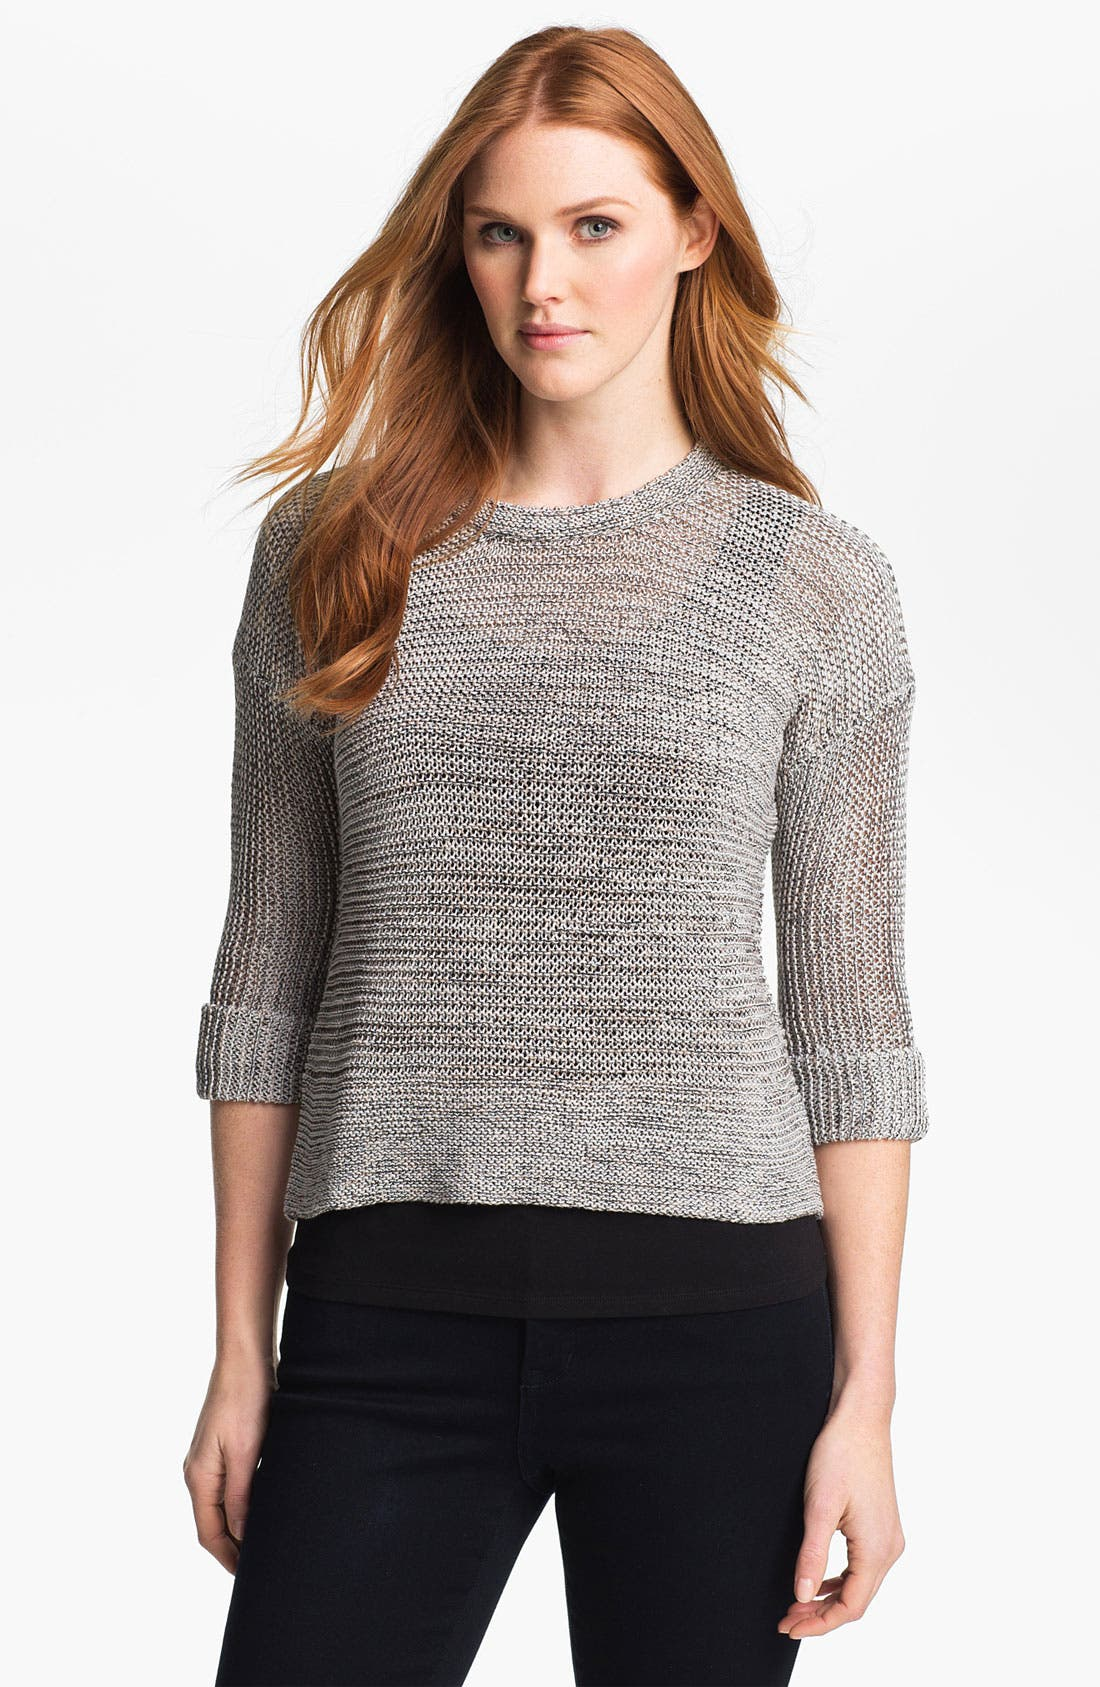 Alternate Image 1 Selected - Nic + Zoe Tape Knit Sweater (Online Exclusive)